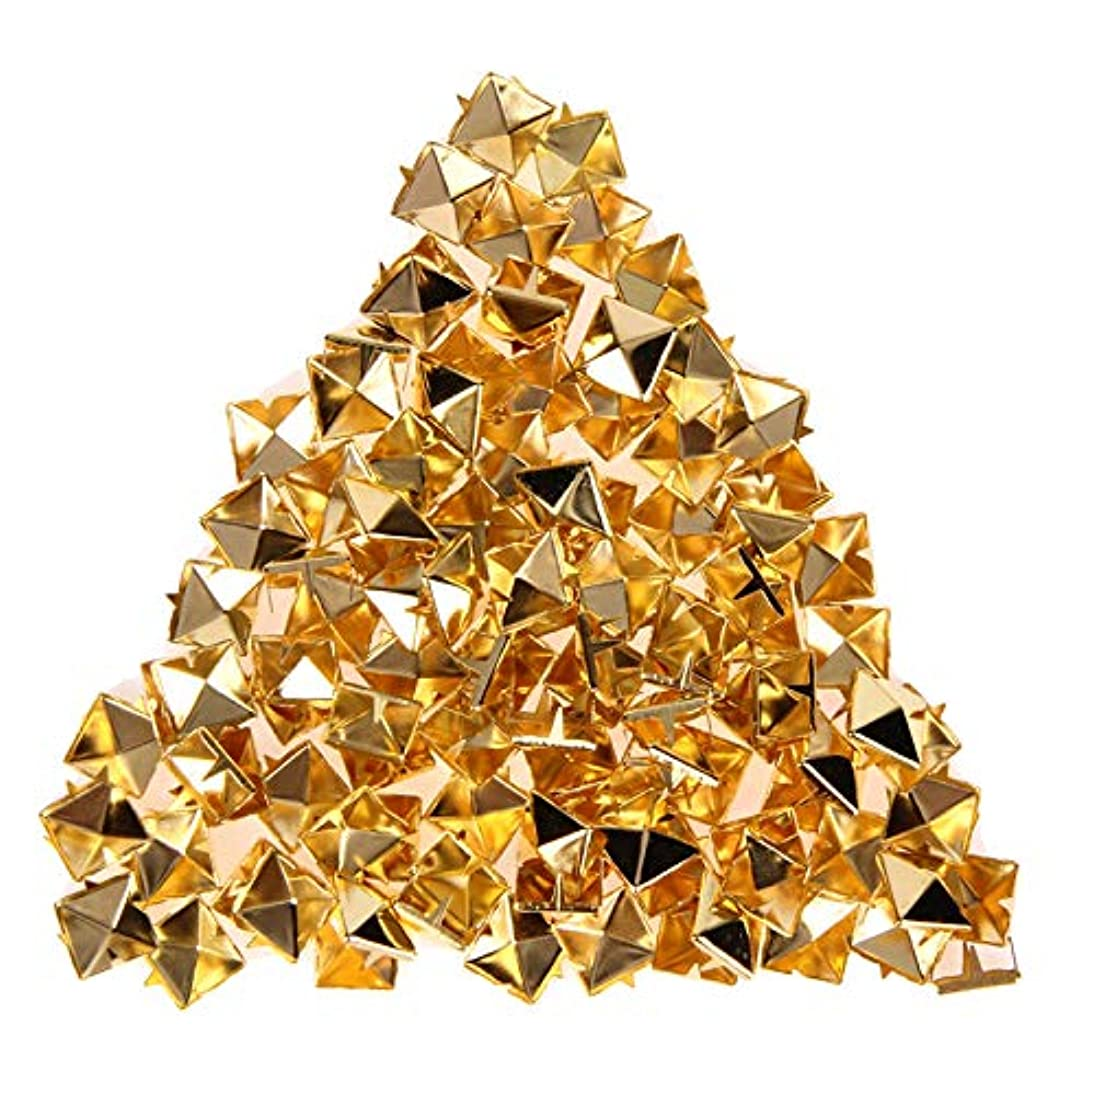 RuiLing 120pcs 3/8 Inch Gold DIY Nailhead Square Pyramid Studs Leathercraft Rivet Metal Punk Spikes Spots for Punk Rock Leather Craft Clothes Belt Bag Shoes Jewelry Decorations 10mm